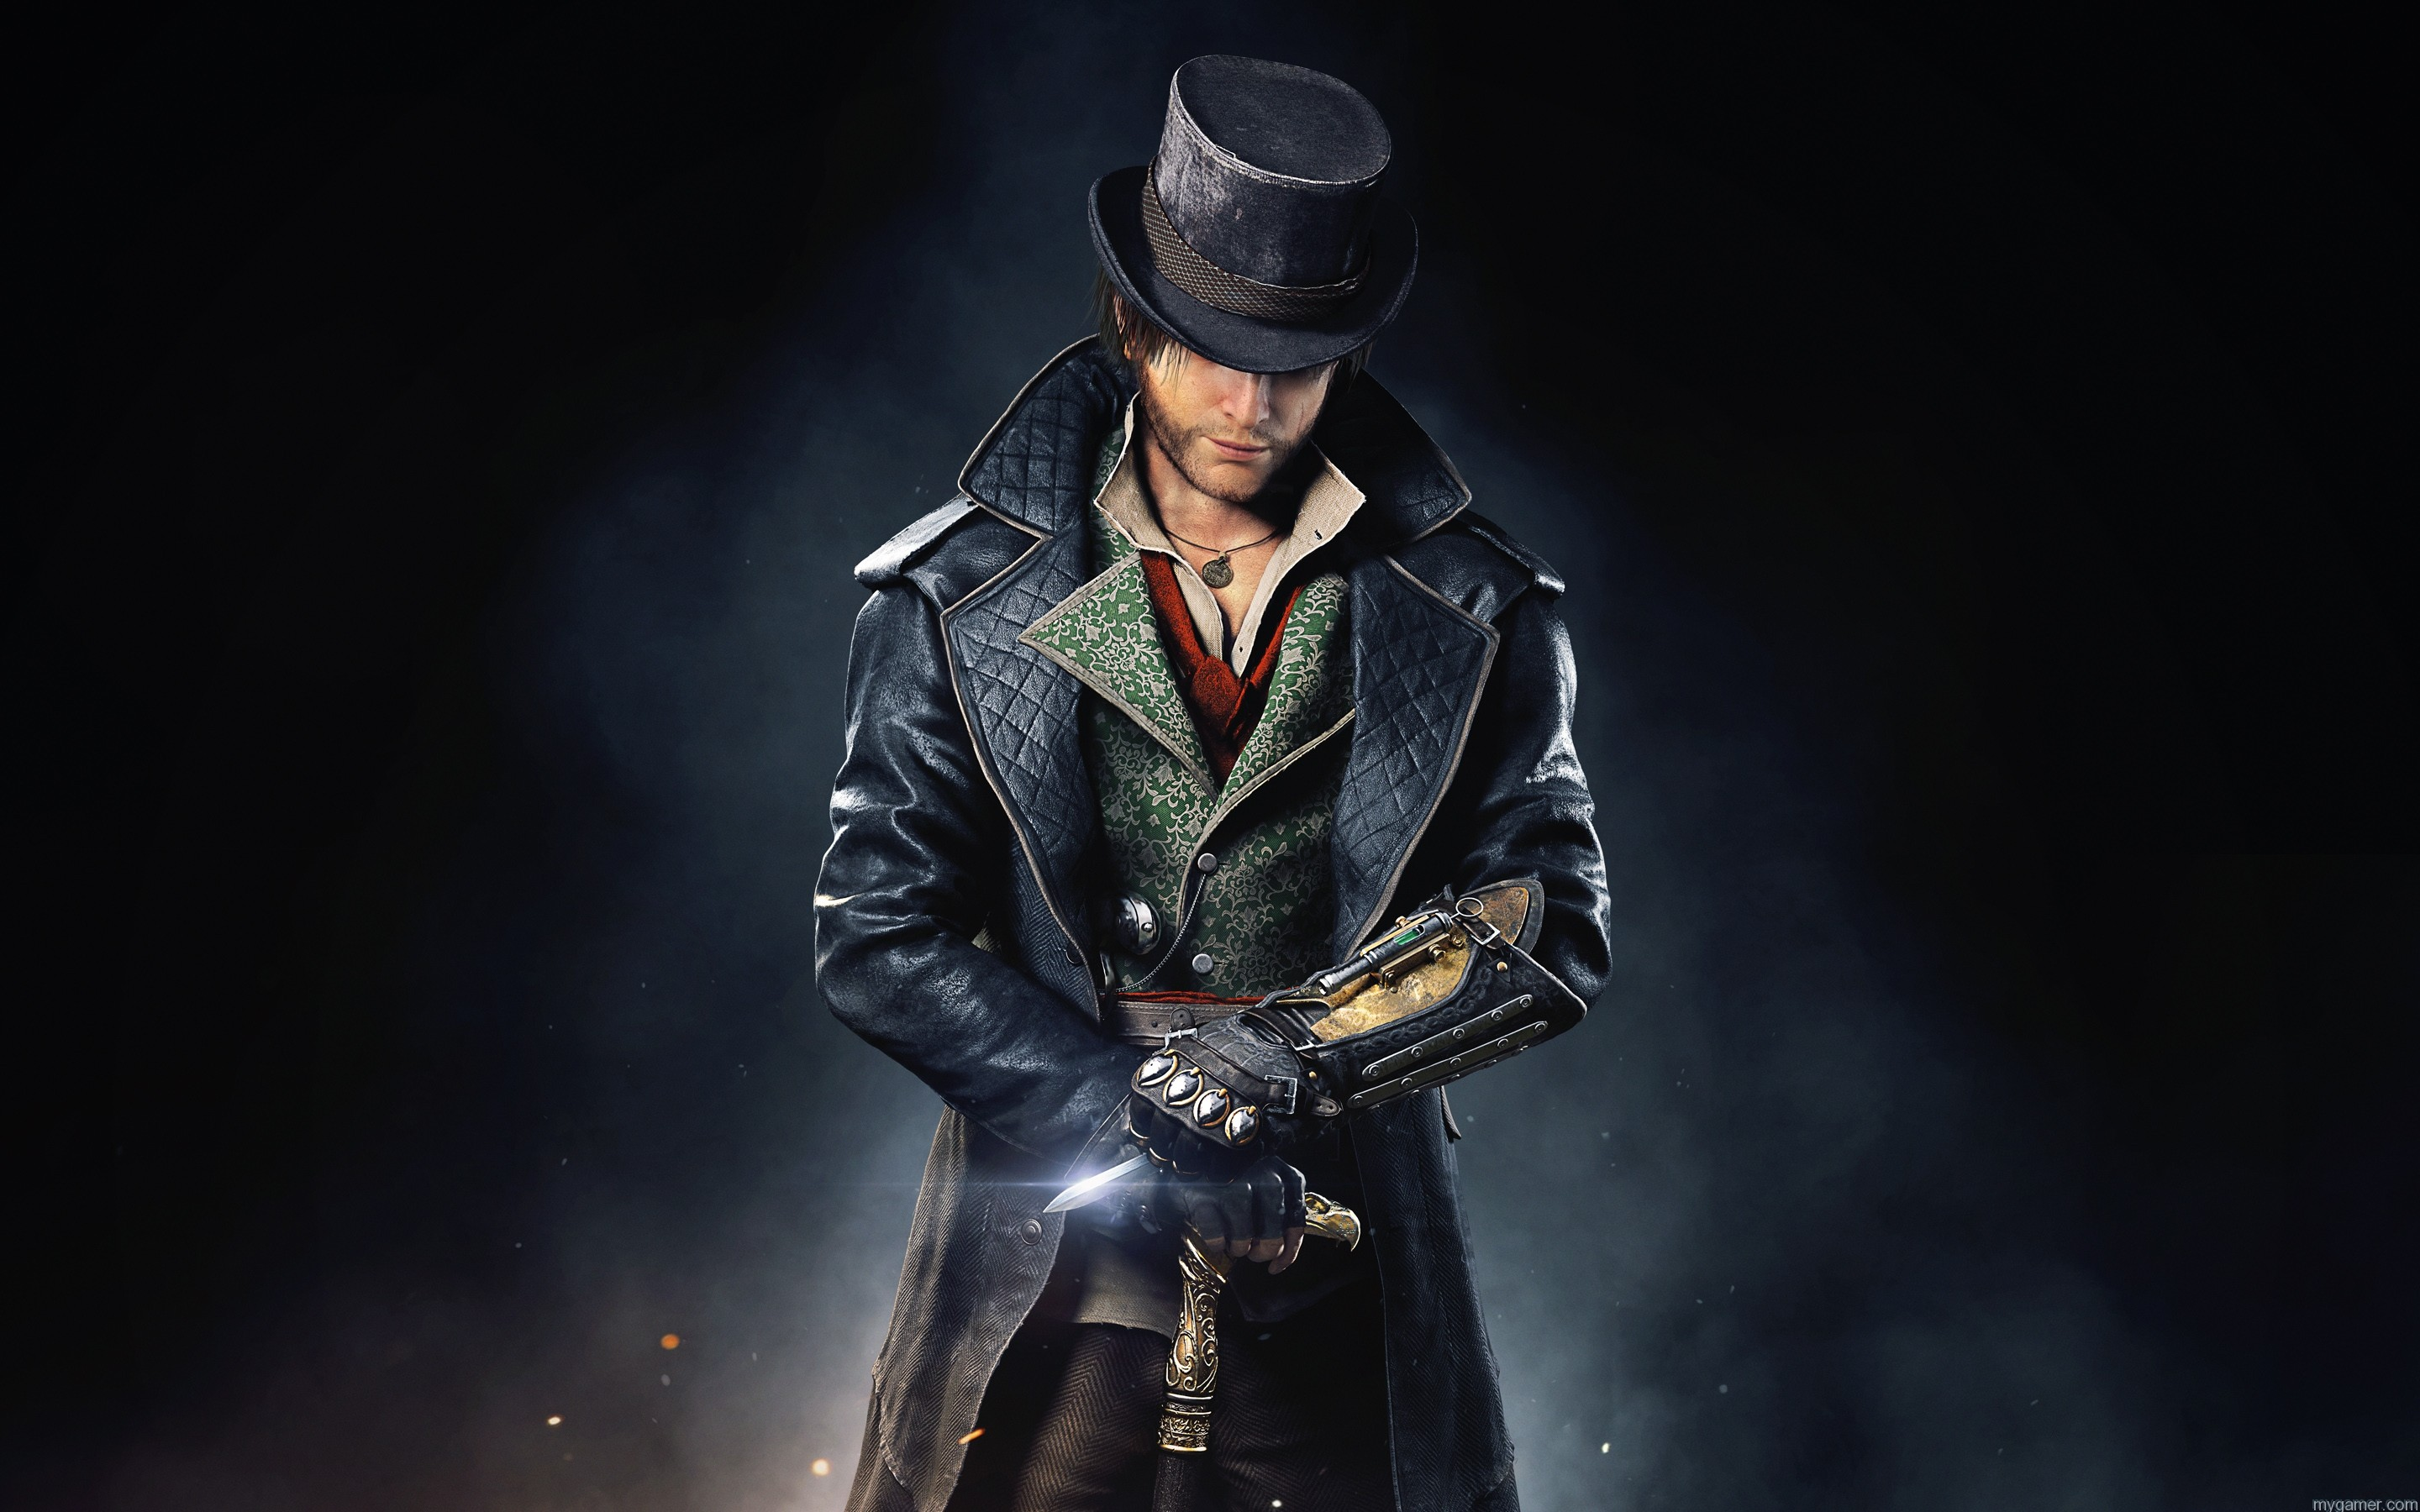 jacob_frye_assassins_creed_syndicate-wide Assassin's Creed Syndicate Now Available on PS4 and Xbox One Assassin's Creed Syndicate Now Available on PS4 and Xbox One jacob frye assassins creed syndicate wide